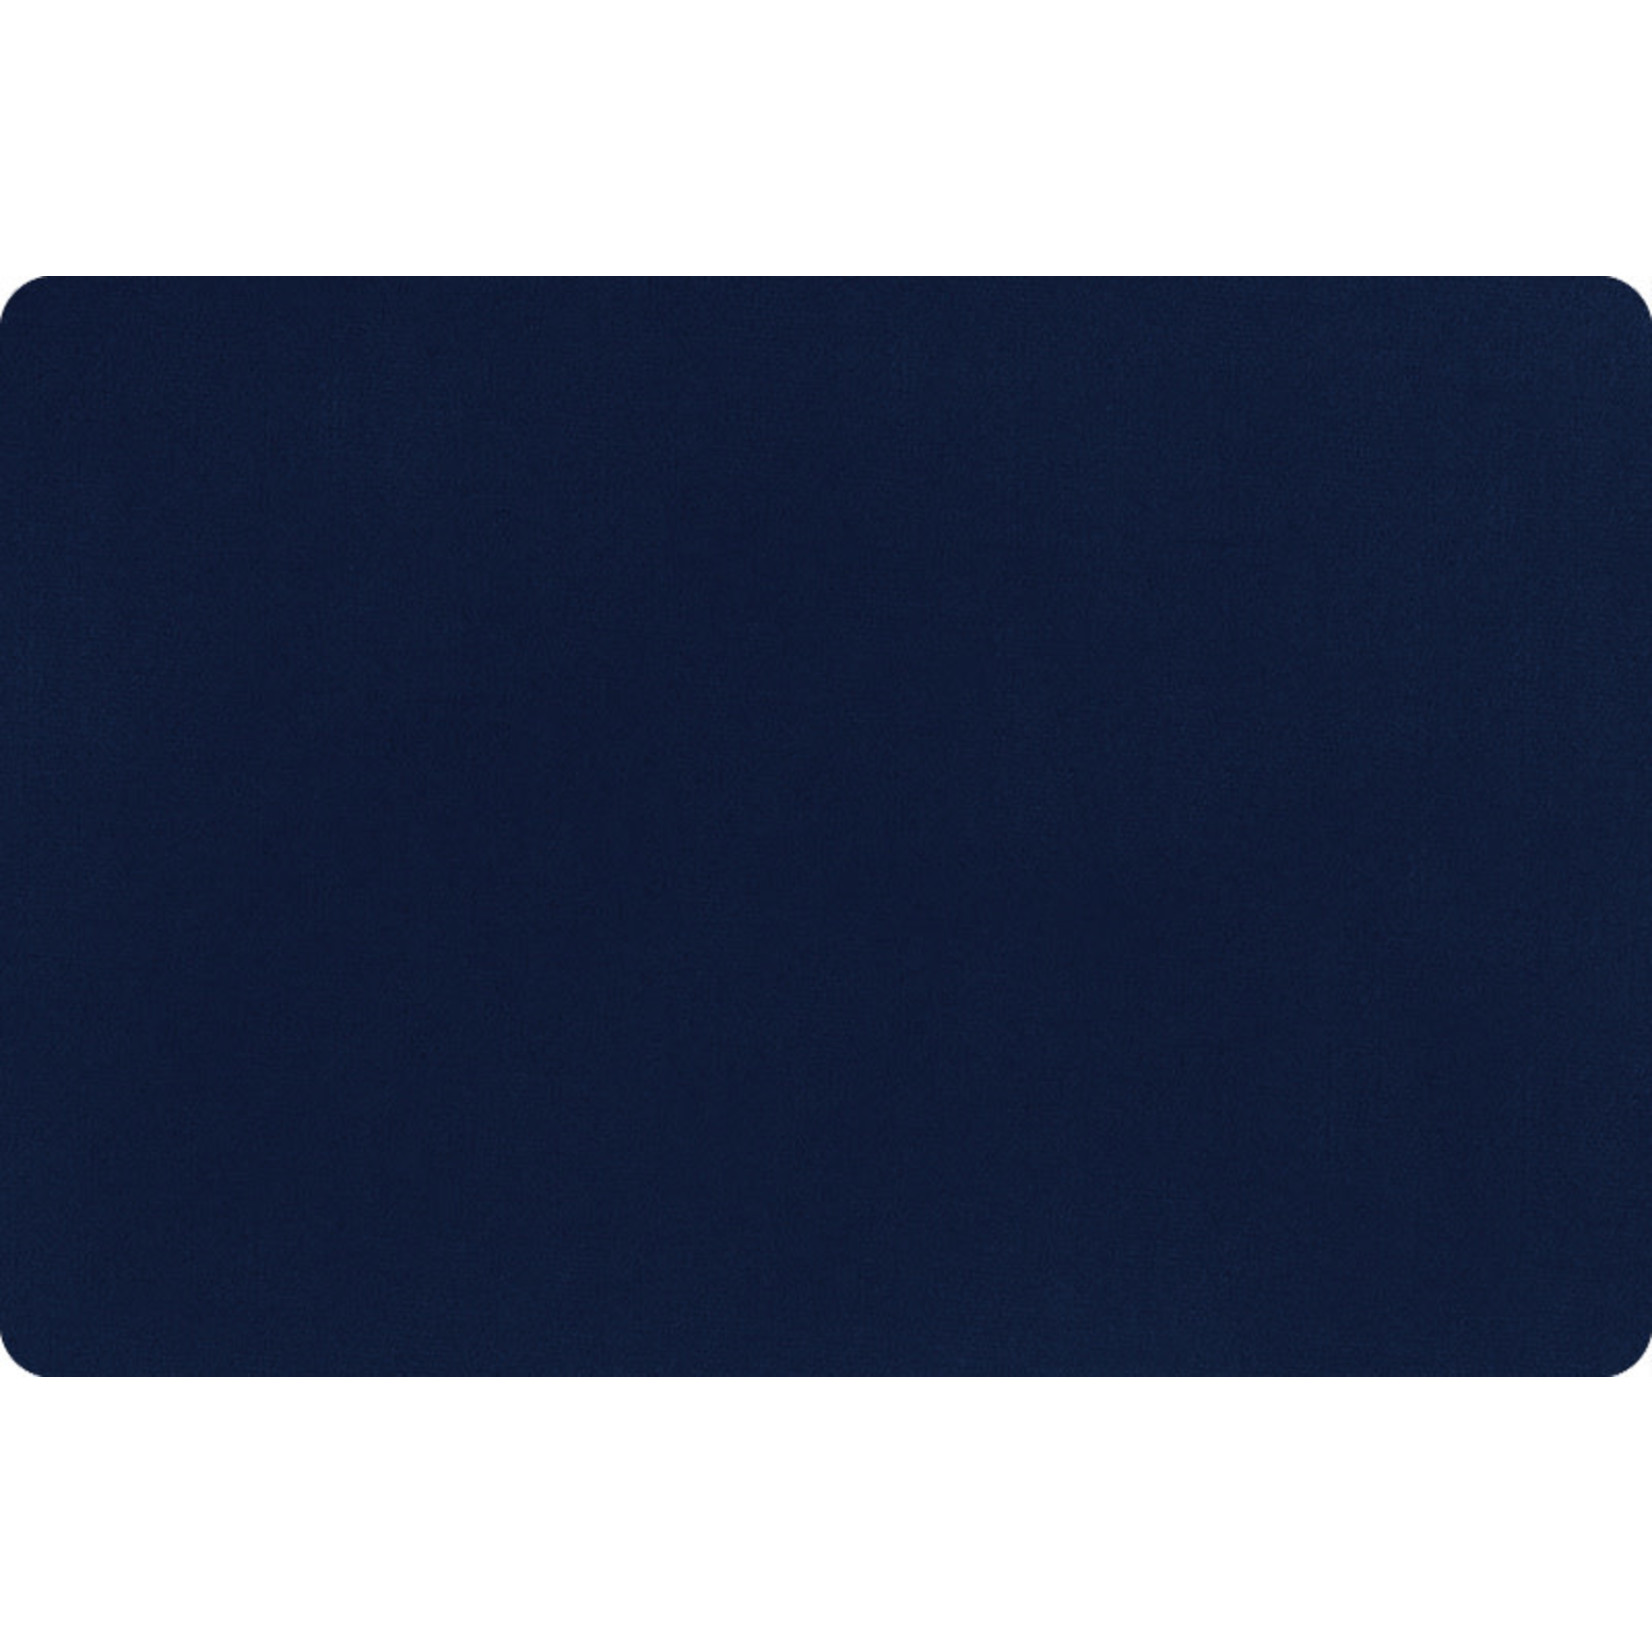 """Shannon Fabrics Minky, Extra Wide Solid Cuddle3, 90"""" Navy, (by the inch)"""